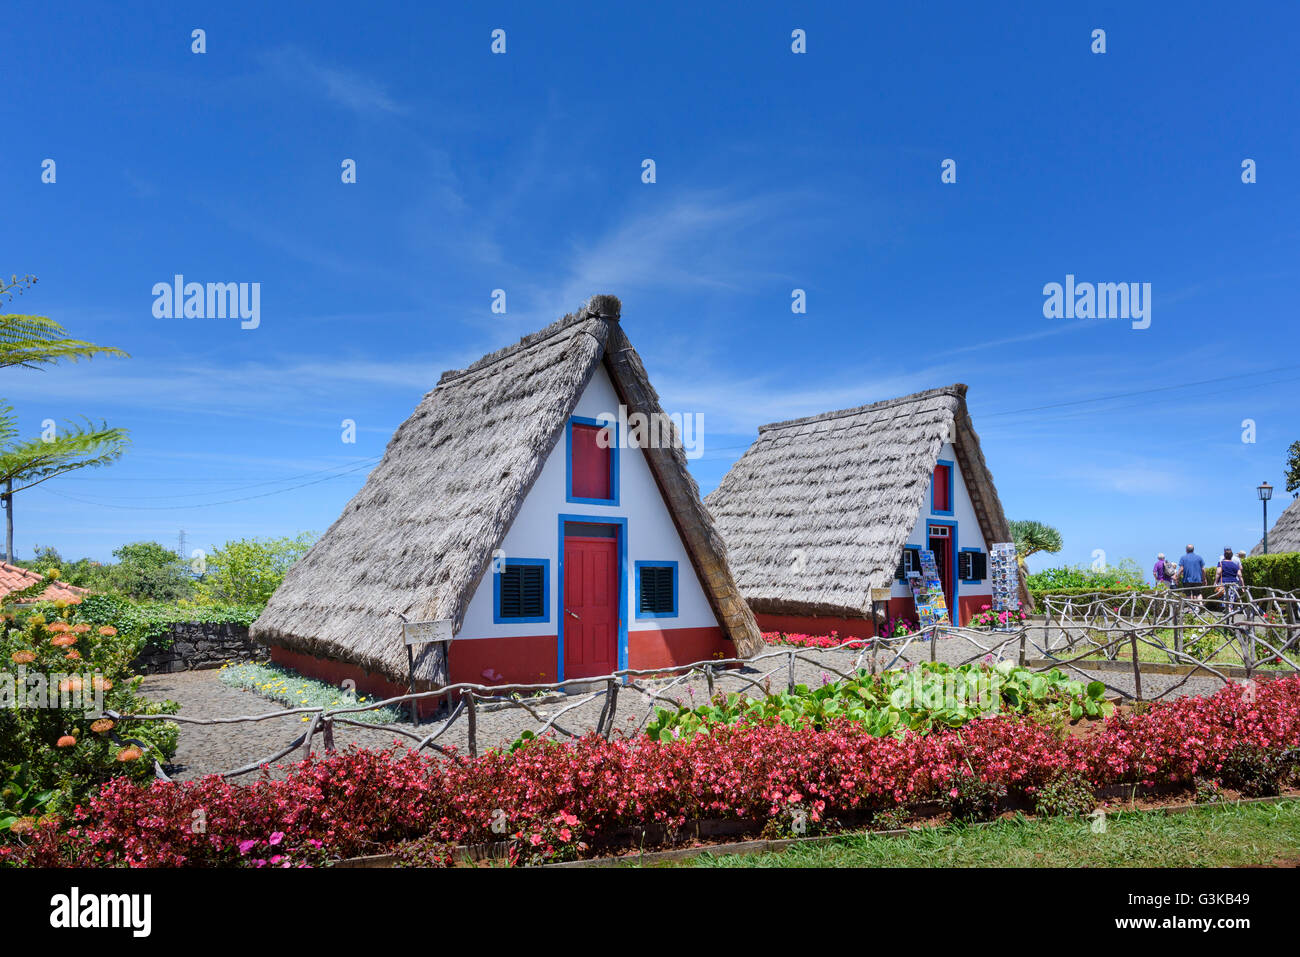 Traditional palheiros - thatched triangular houses in Santana Madeira - Stock Image